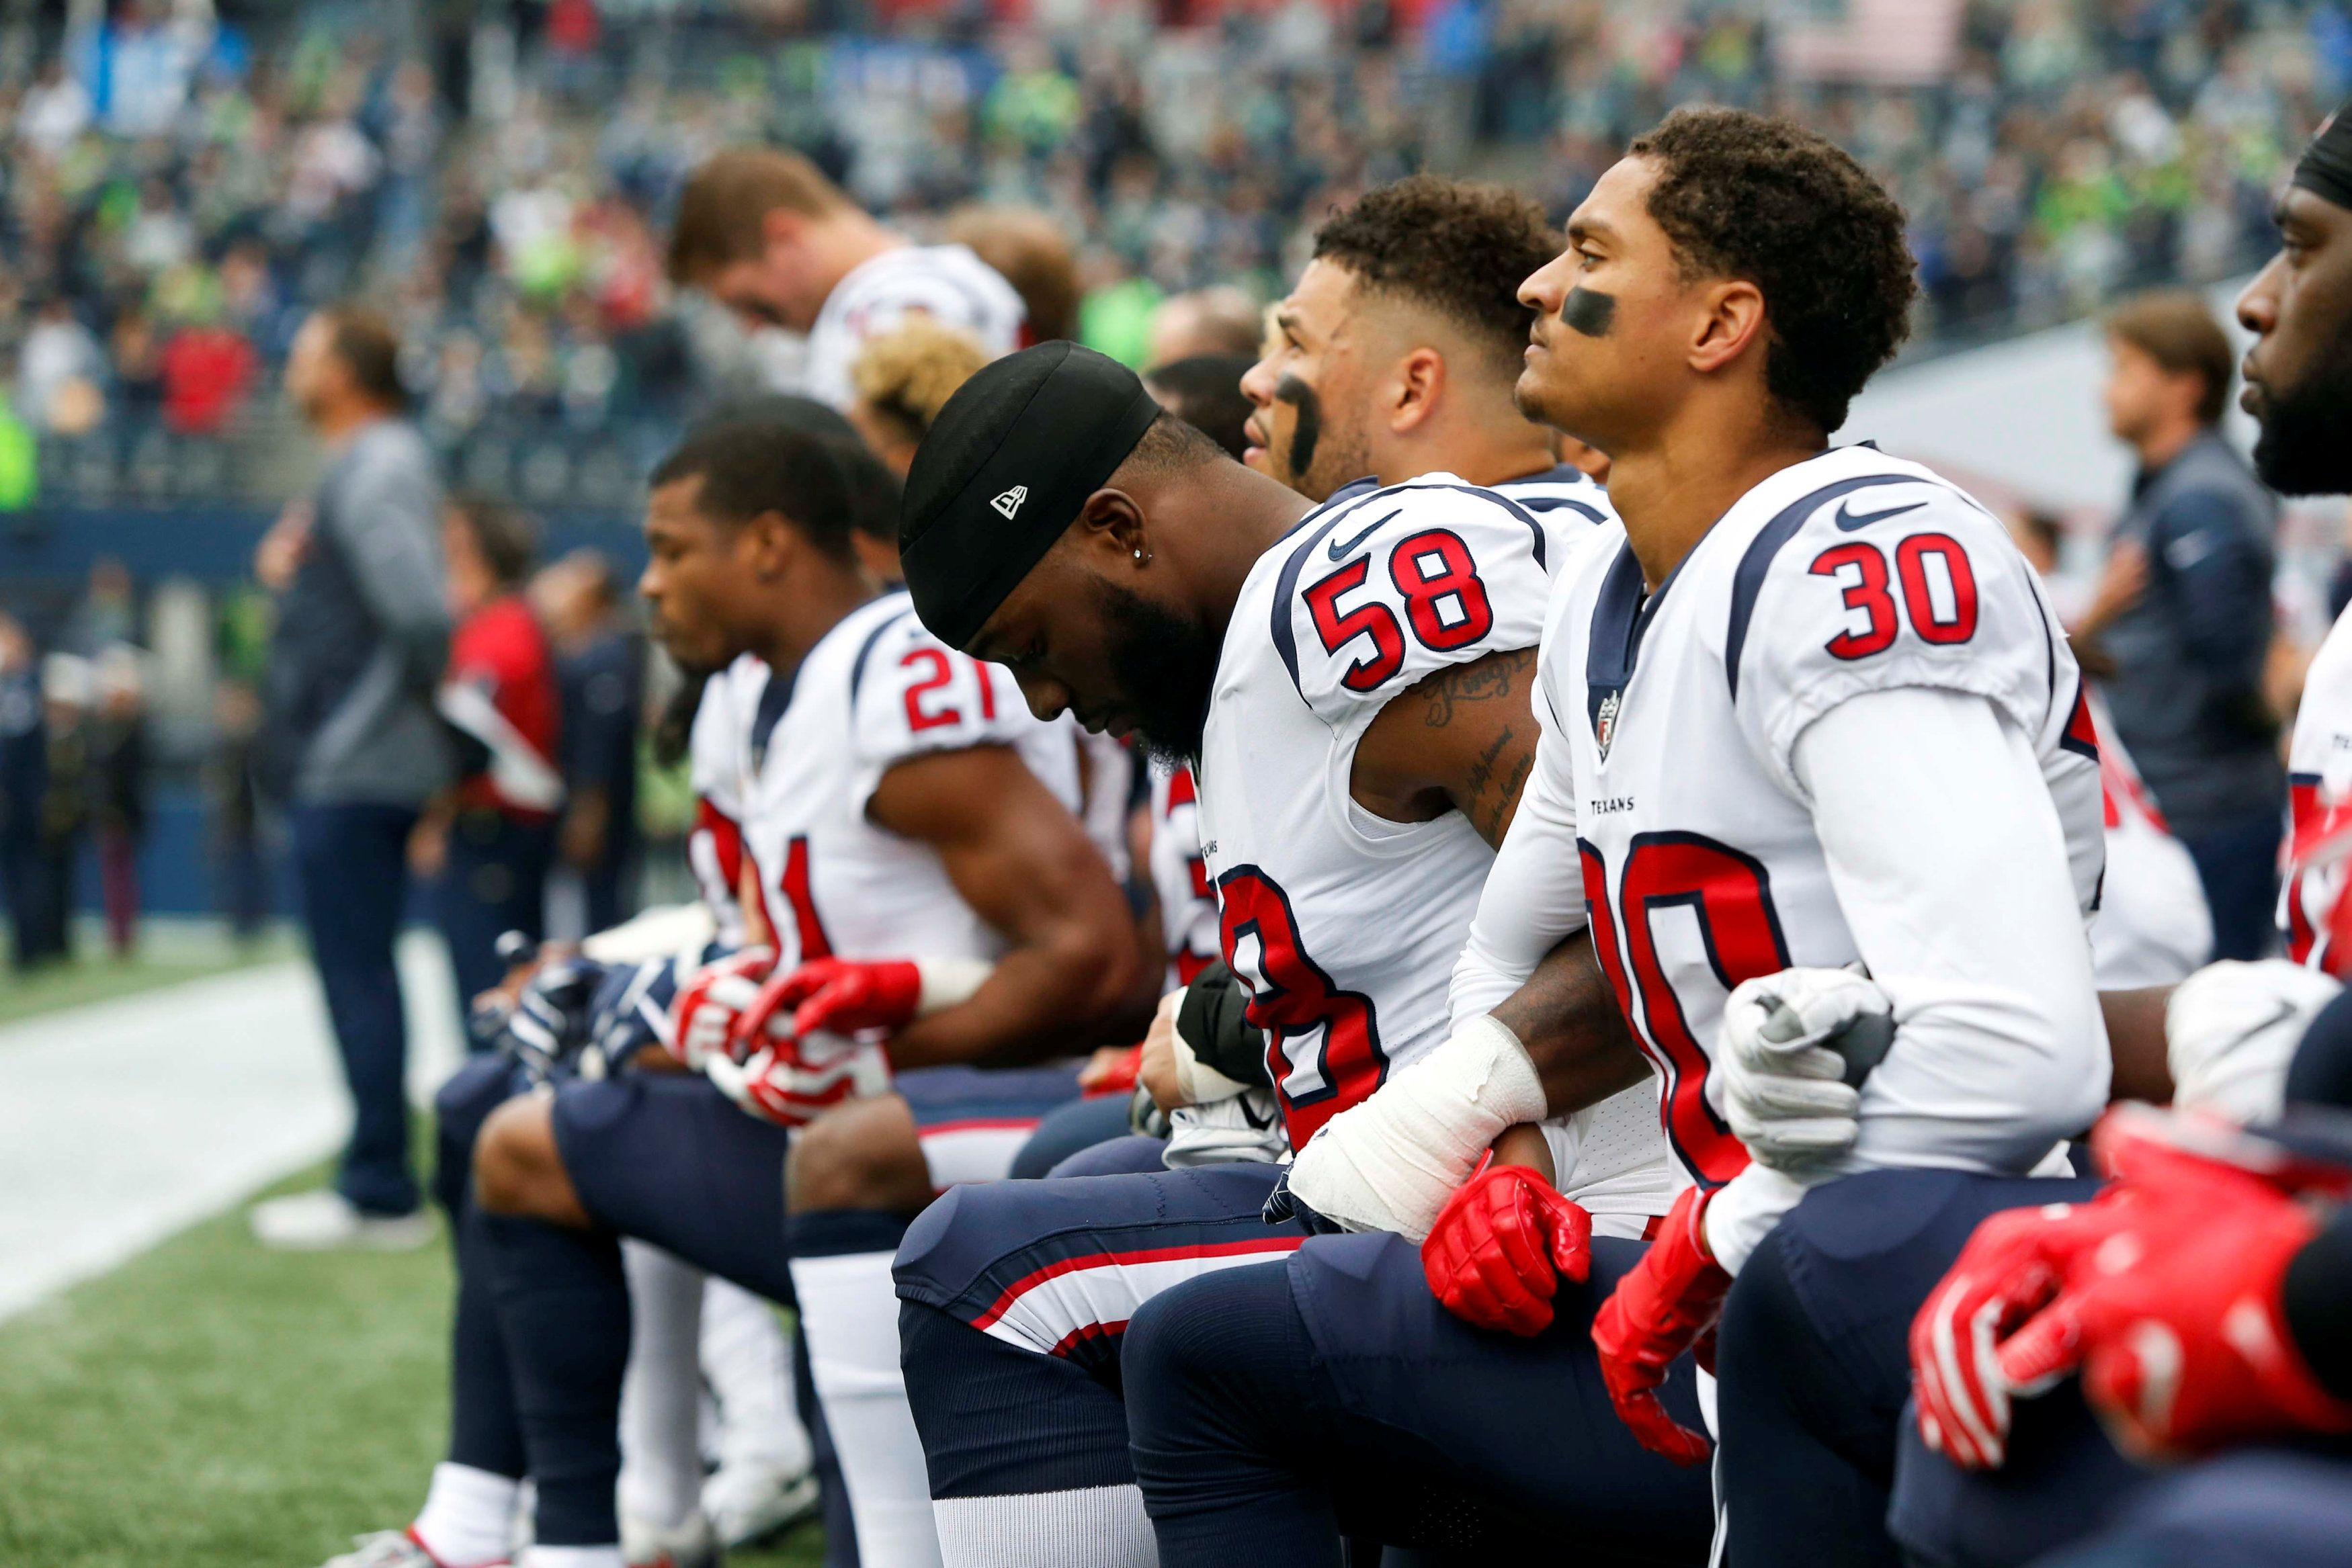 Most Of Nfl S Houston Texans Kneel During Anthem After Owner S Inmates Remark Nfl Players Texans Players Nfl